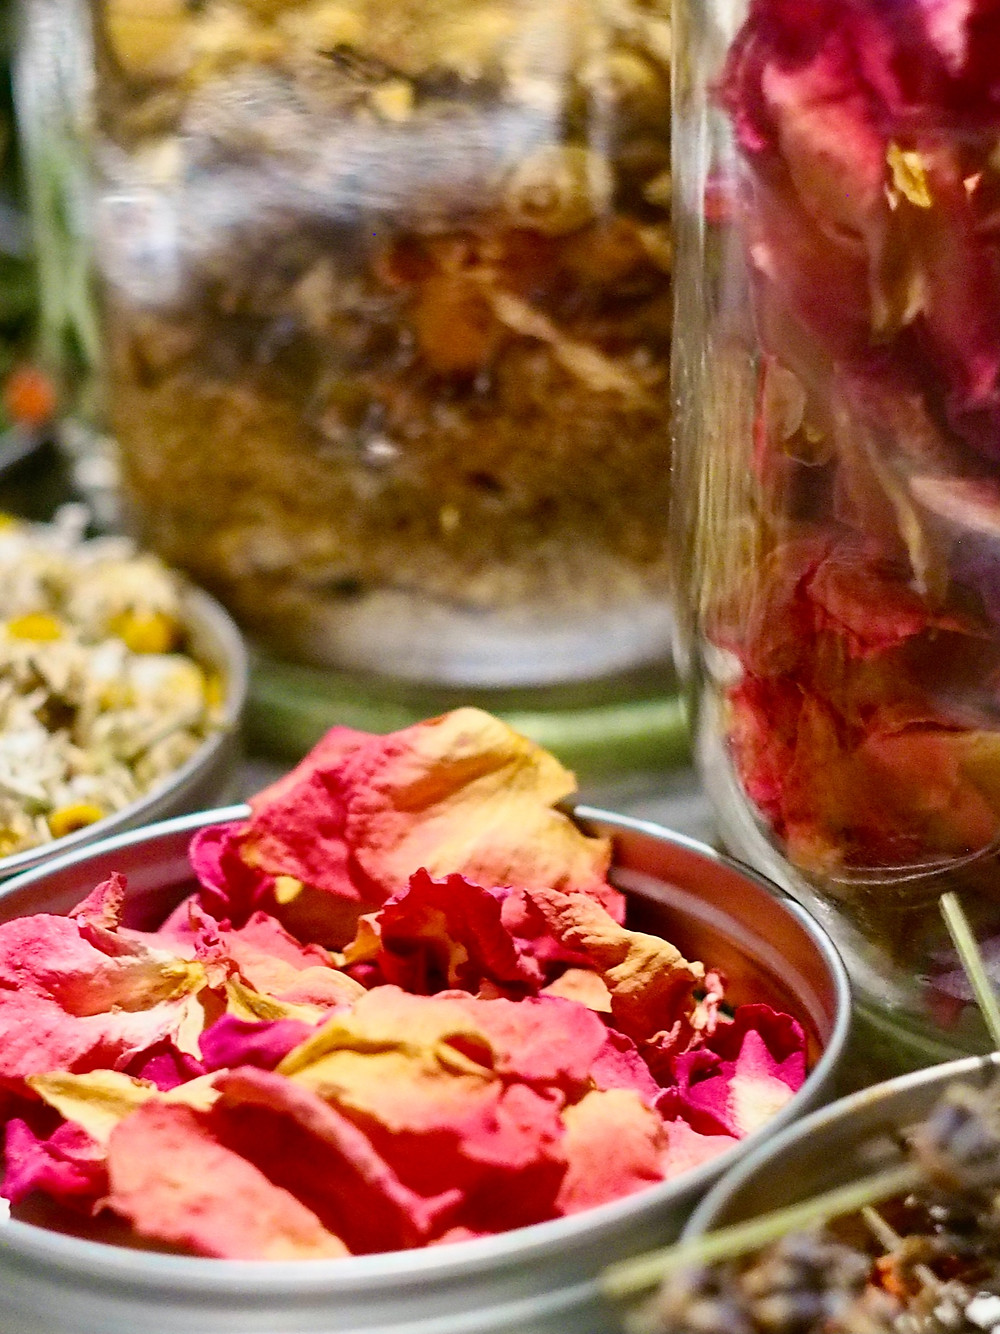 Homegrown and Dried Rose Petals